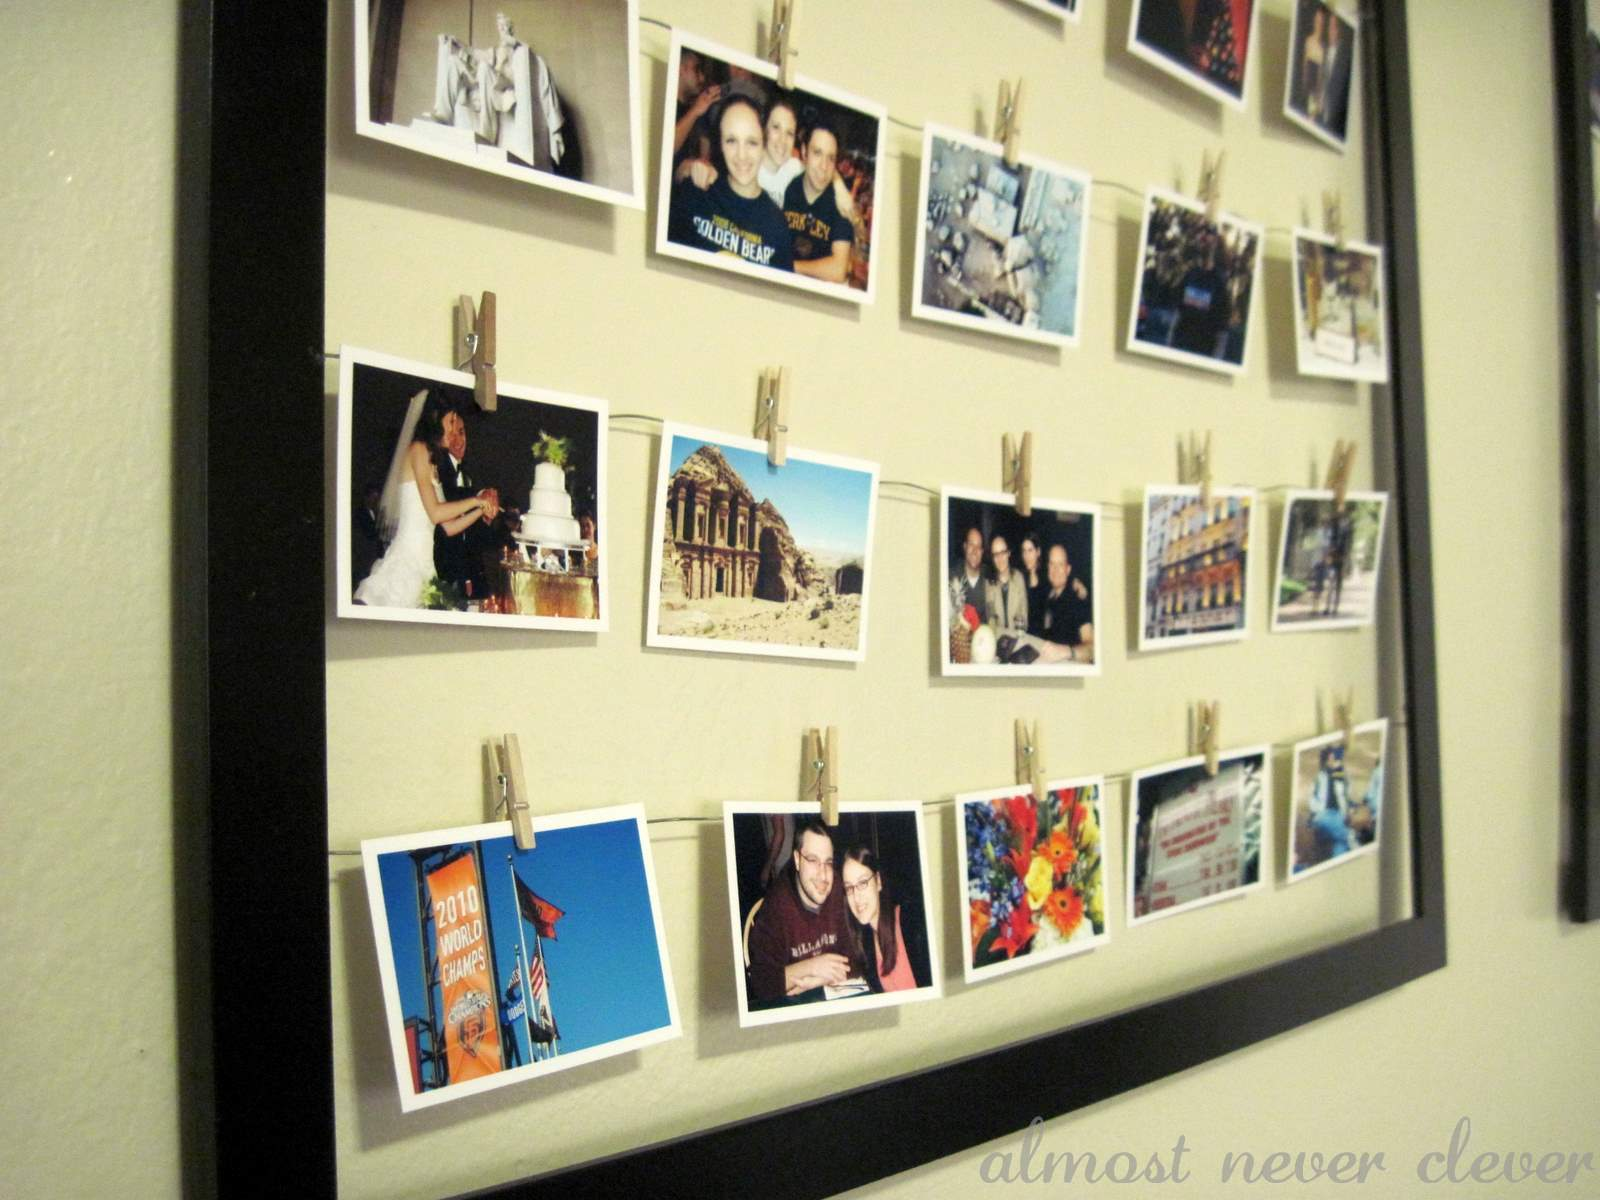 Office Wall Frames. Photo Wall Art. Office Frames L - Bgbc.co